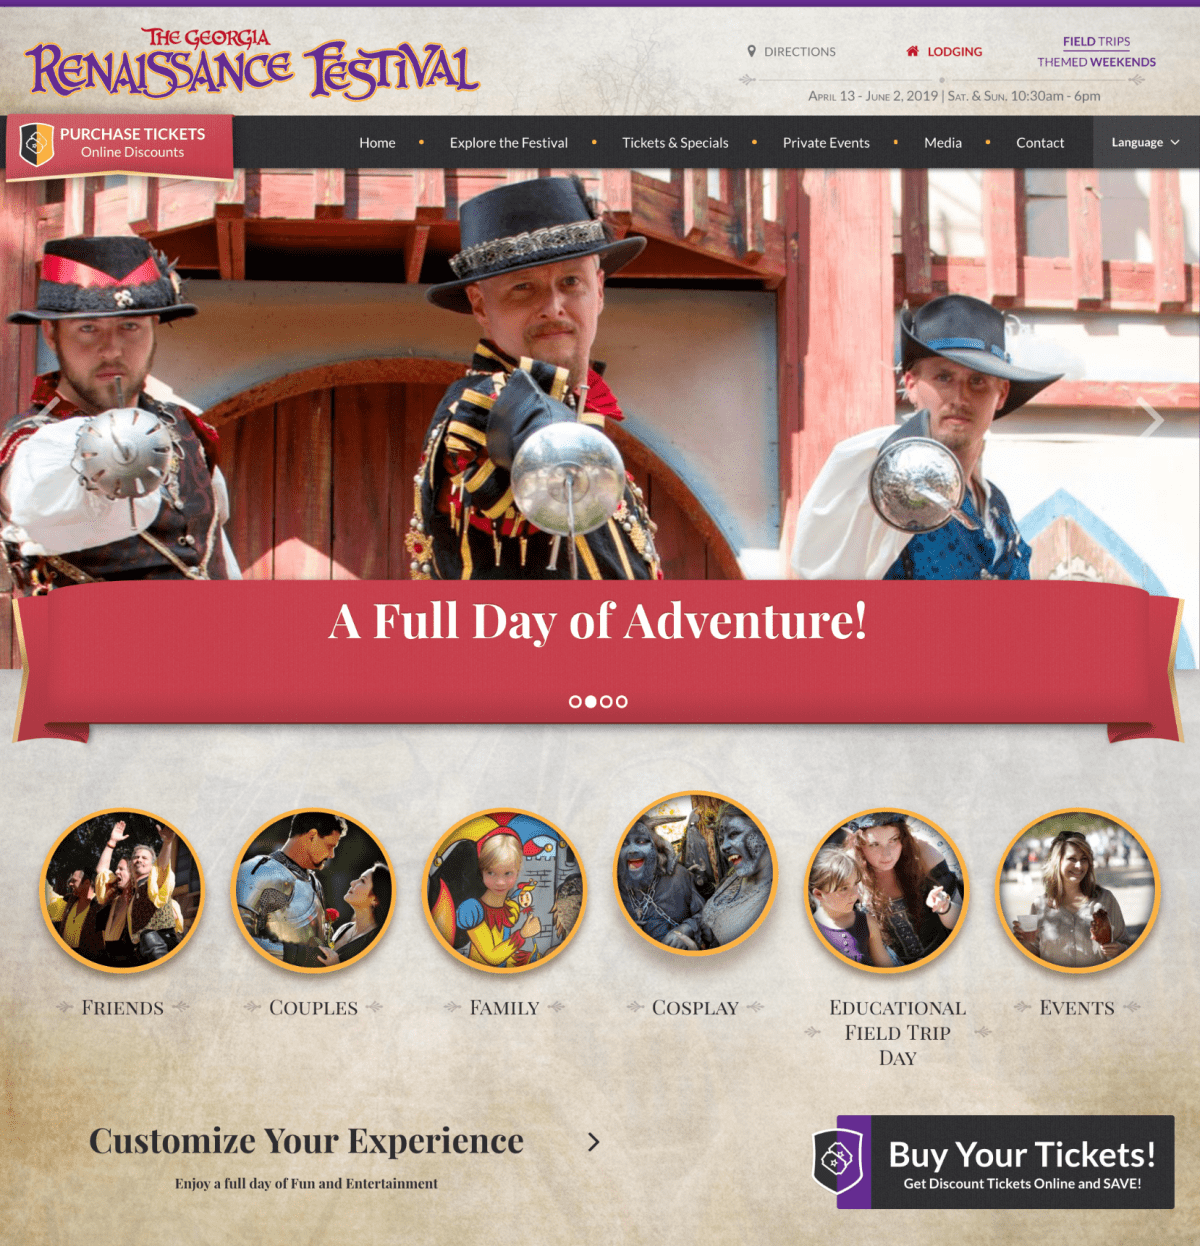 Image of website for Georgia Renaissance Festival